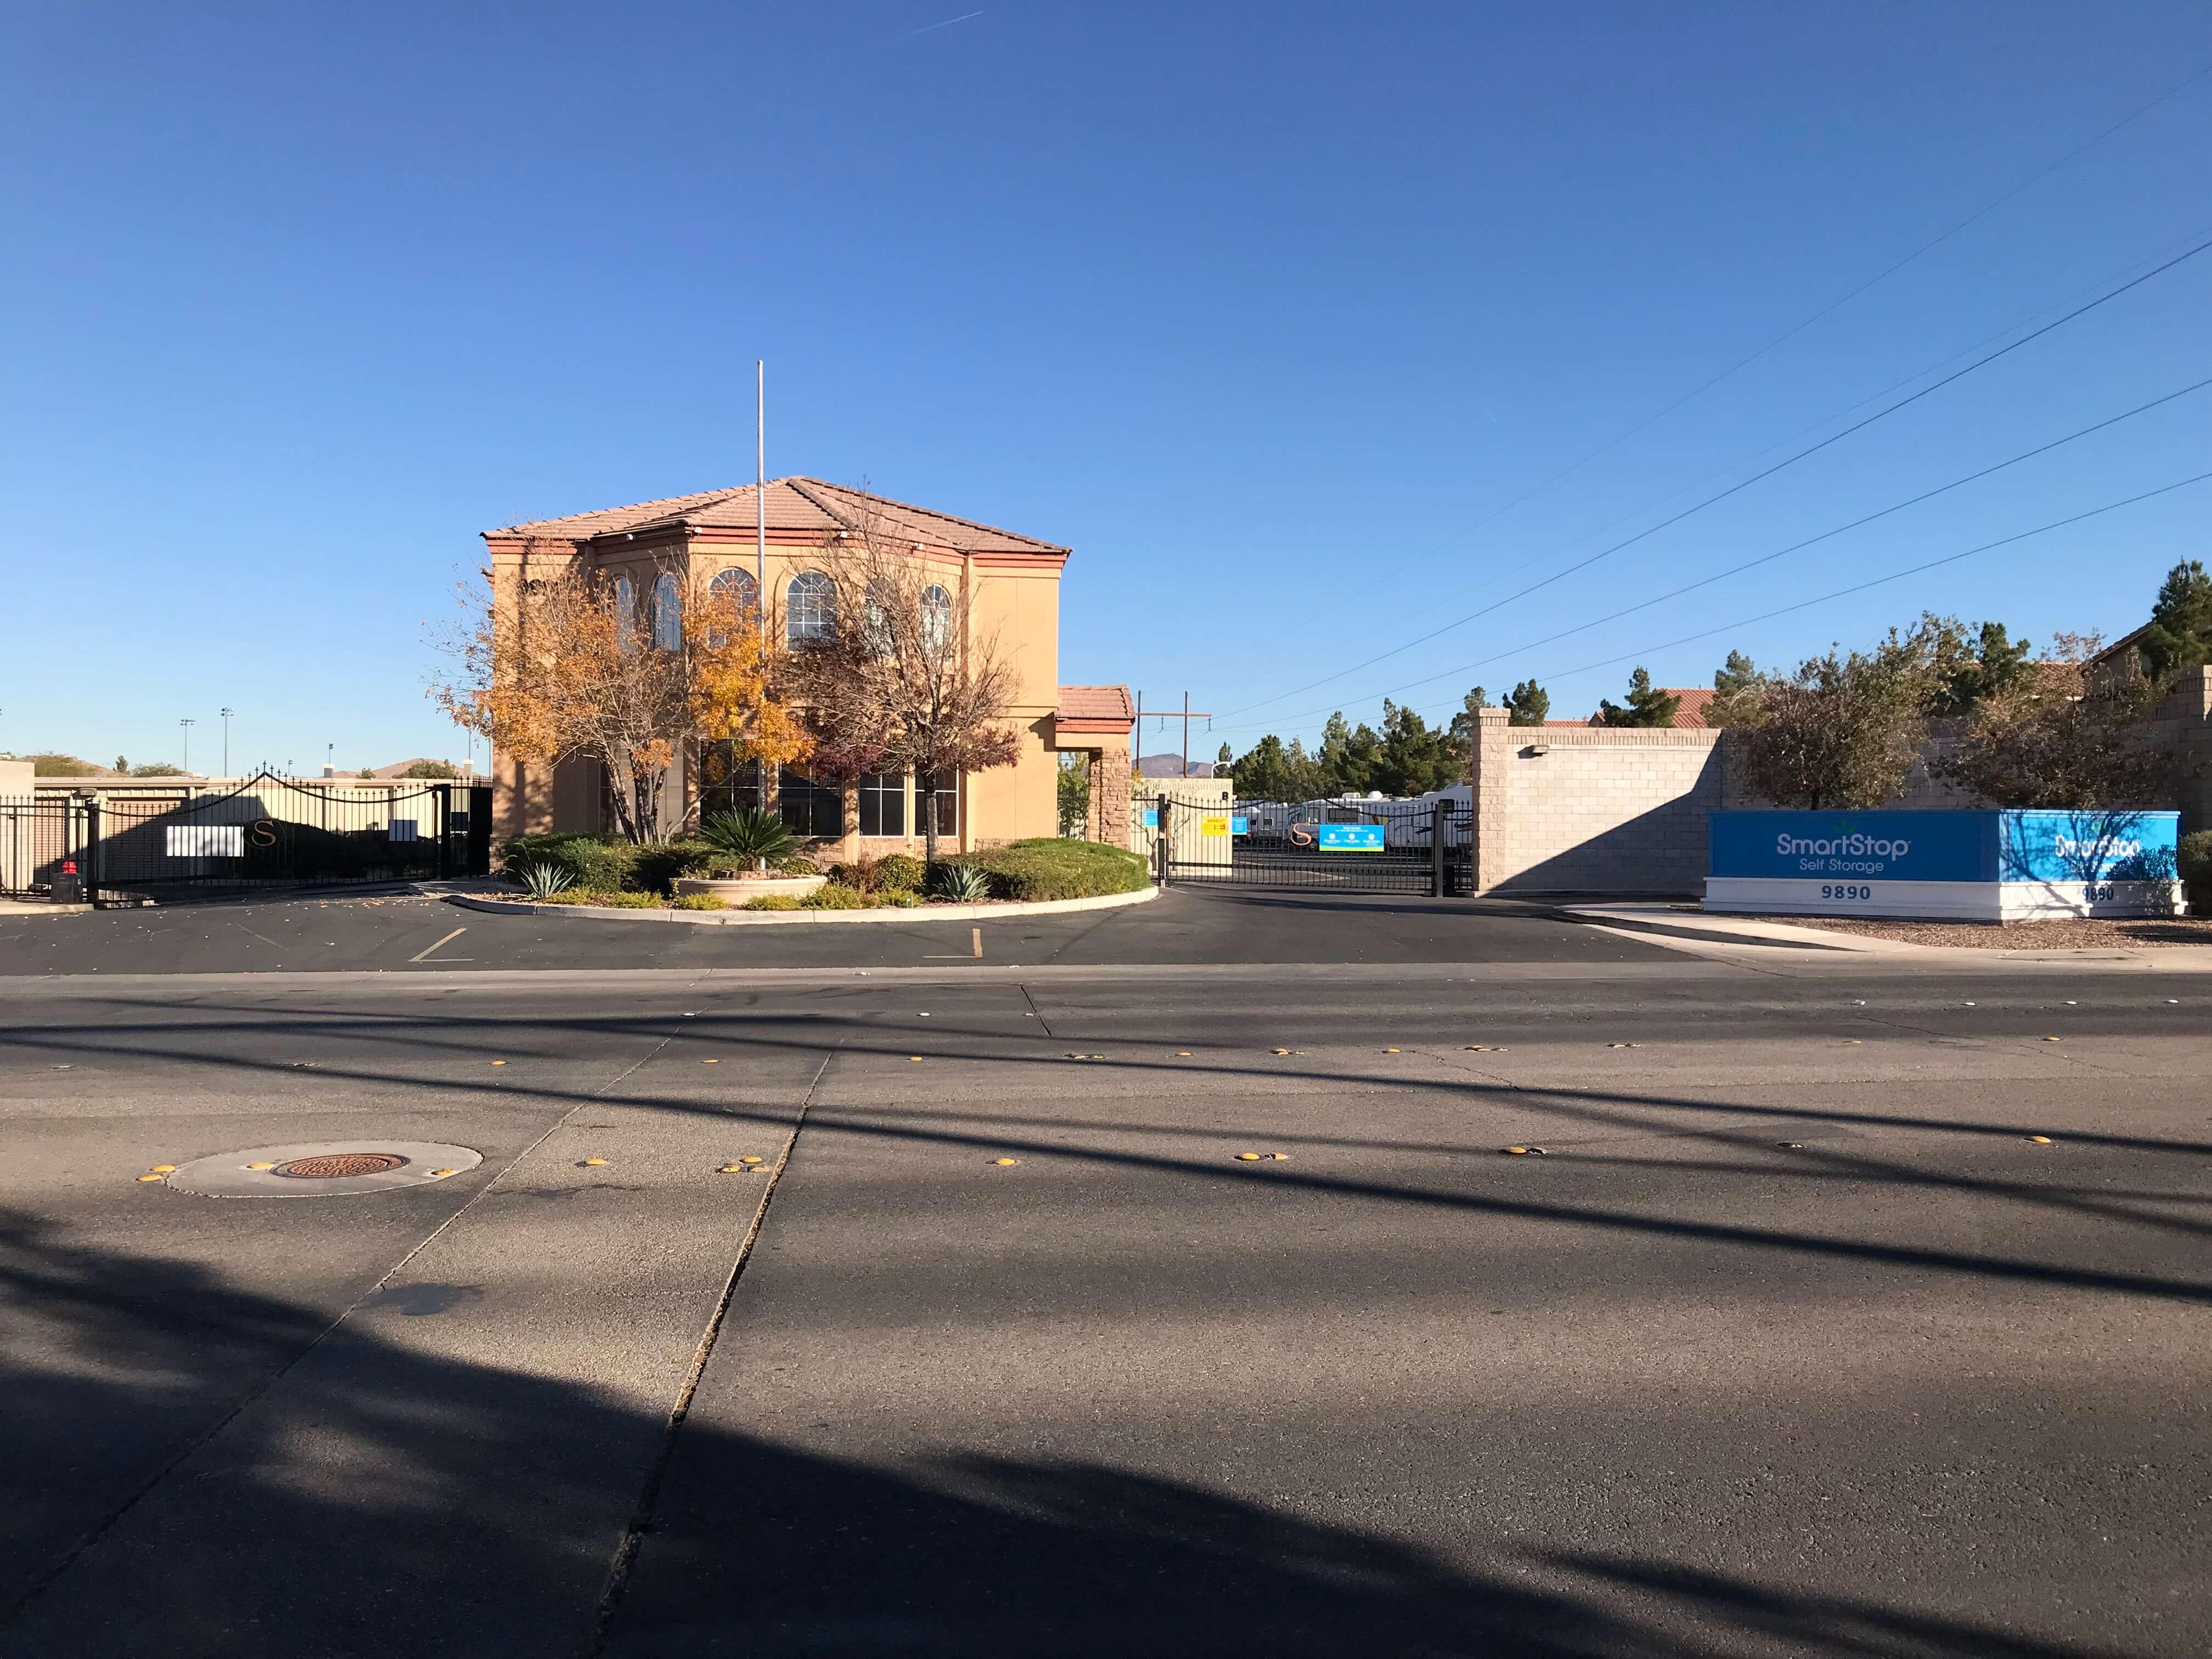 Street view looking at Smart Stop self storage facility located at 9890 Pollock Drive, Las Vegas Nevada